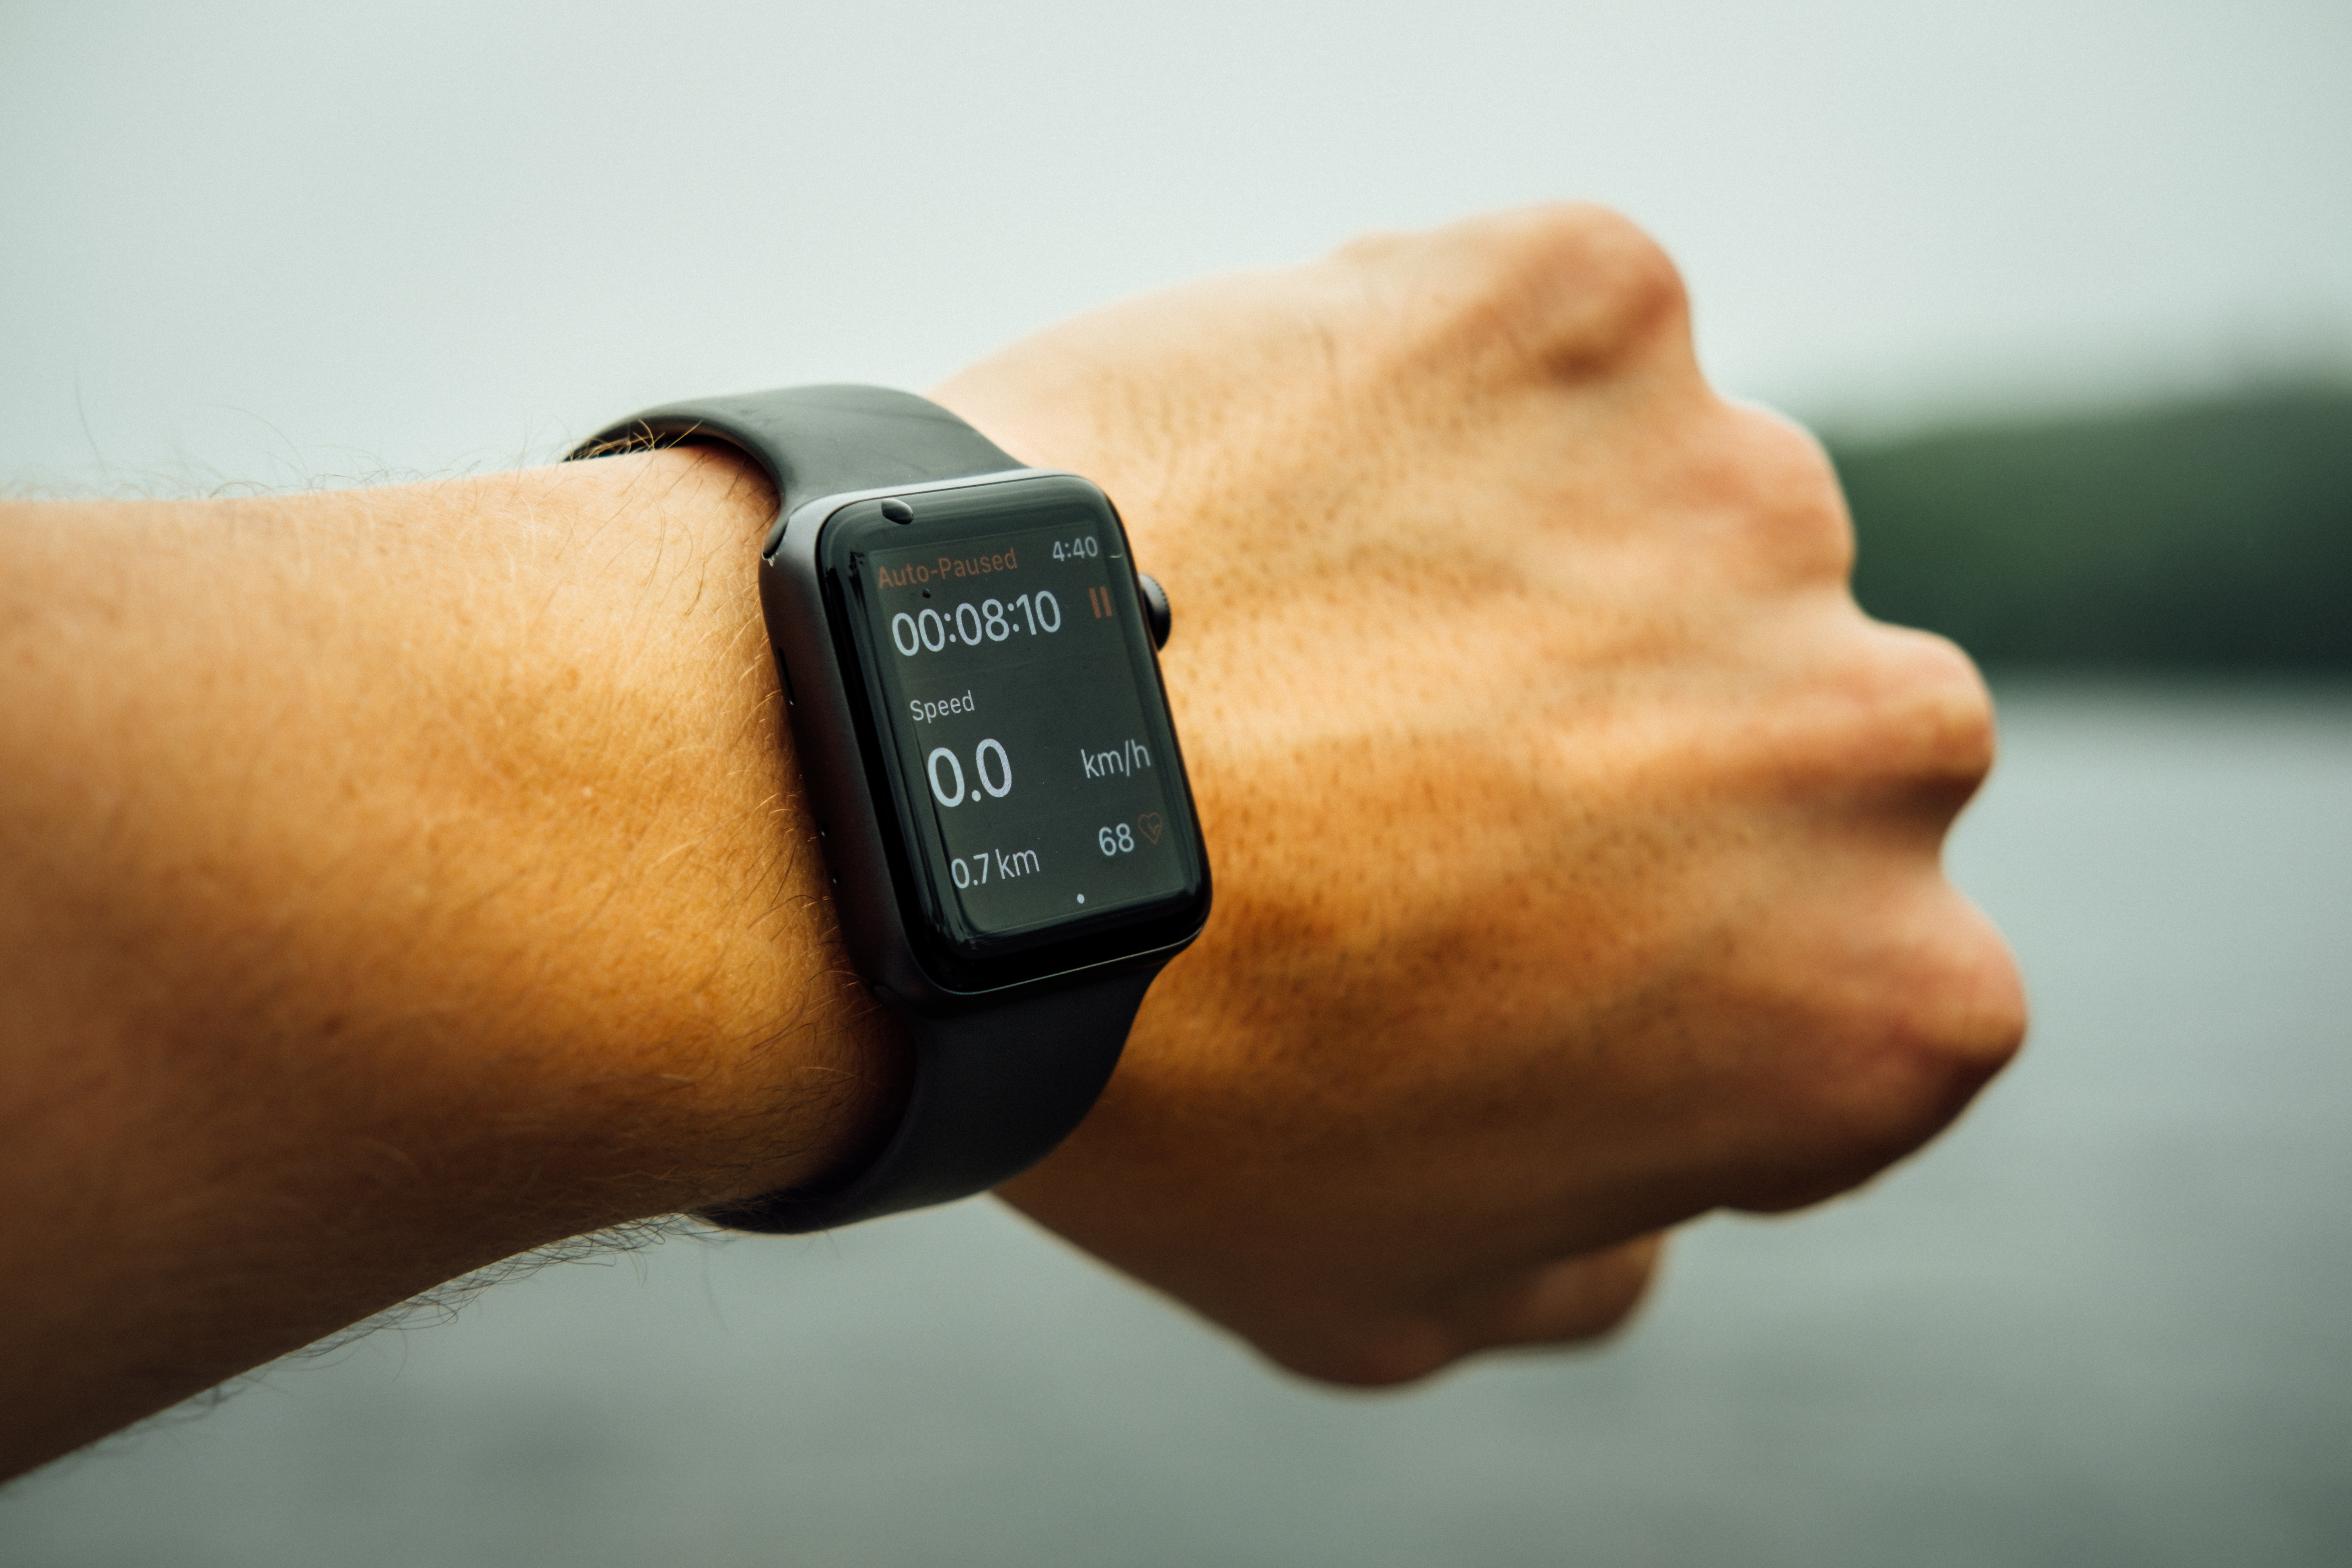 Image of an Apple Watch on a person's wrist